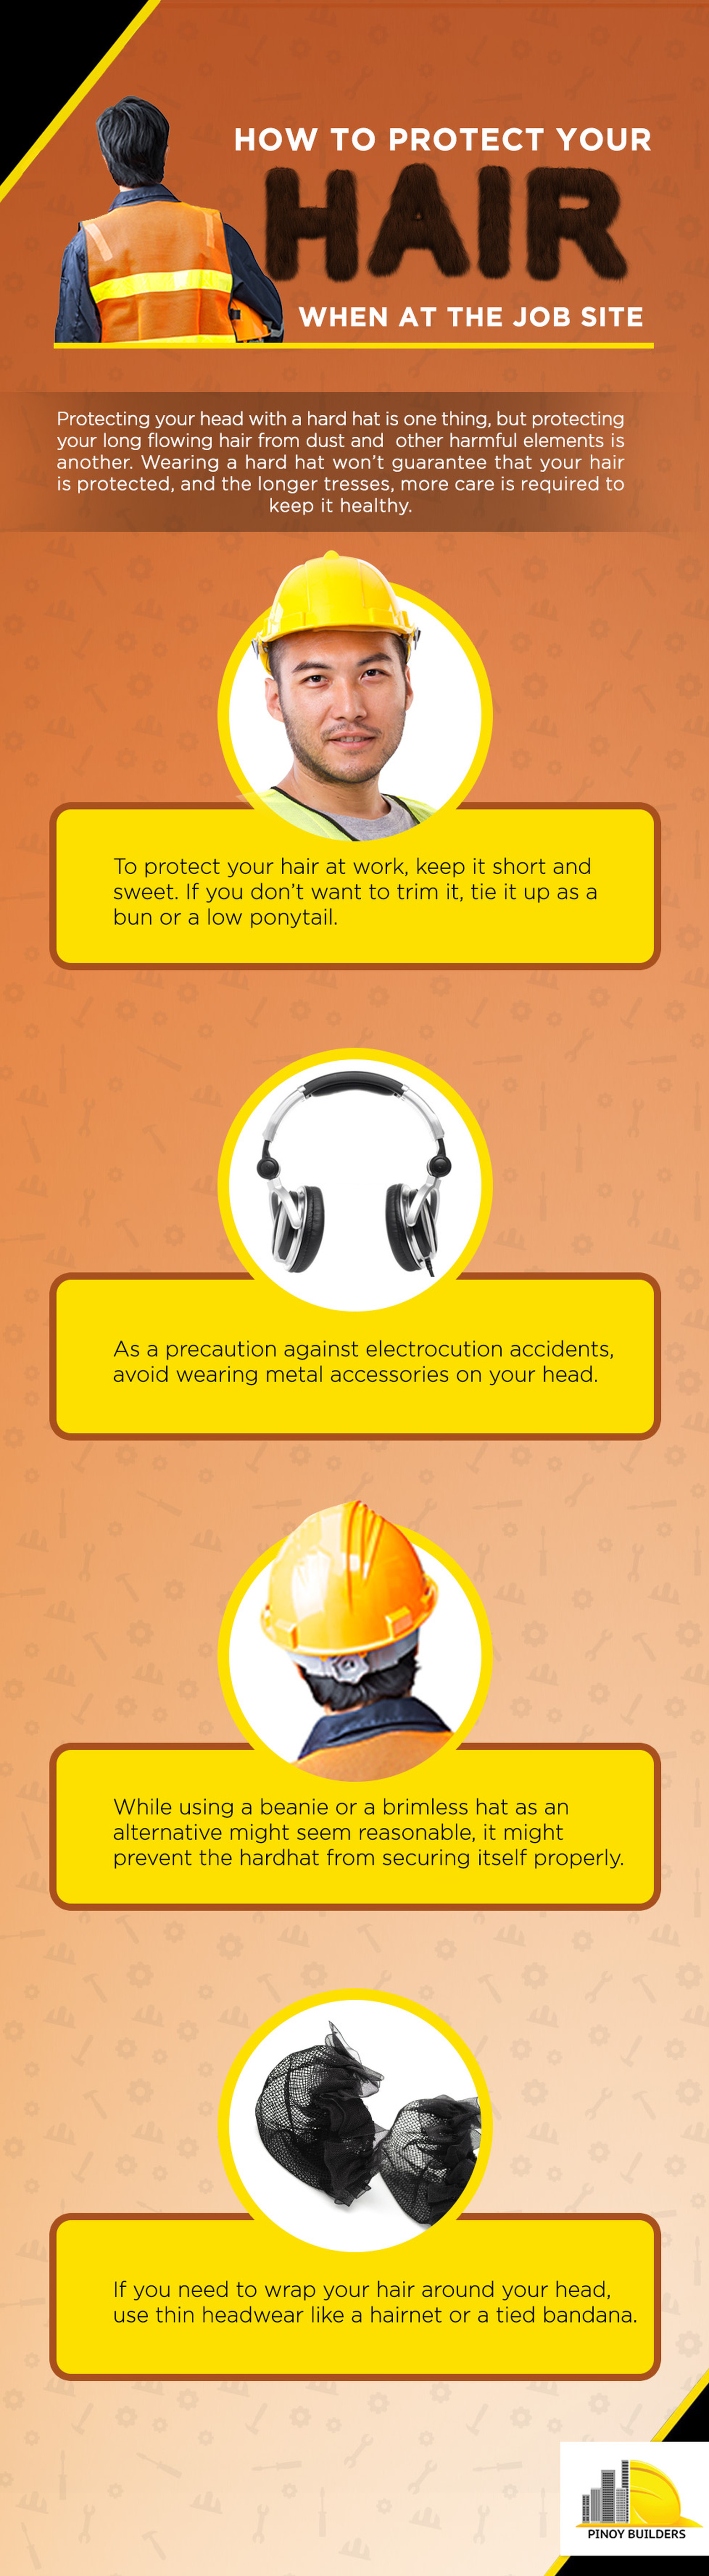 Infographics -HOW TO PROTECT YOUR HAIR.jpg